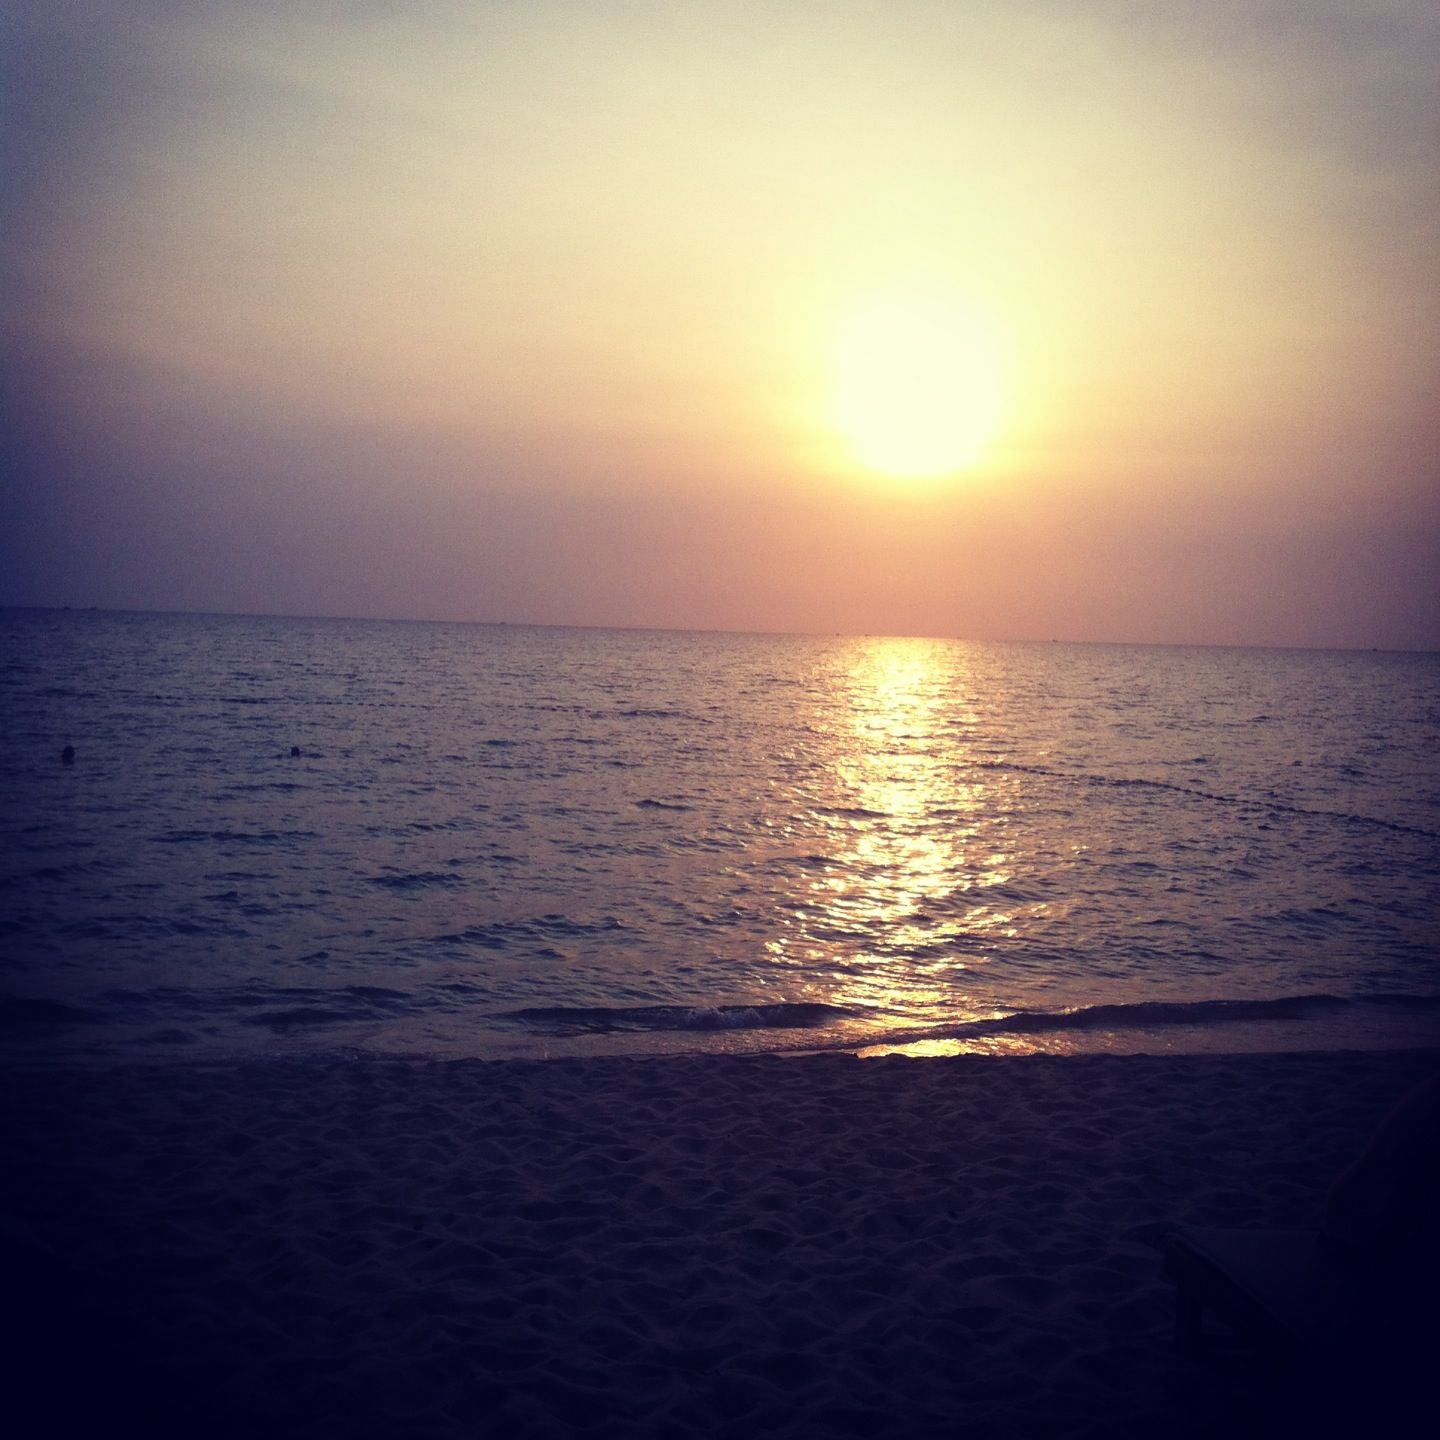 Phu Quoc - Cassia Cottage - #Sunset - #sea - #Vietnam -  By #seheiah